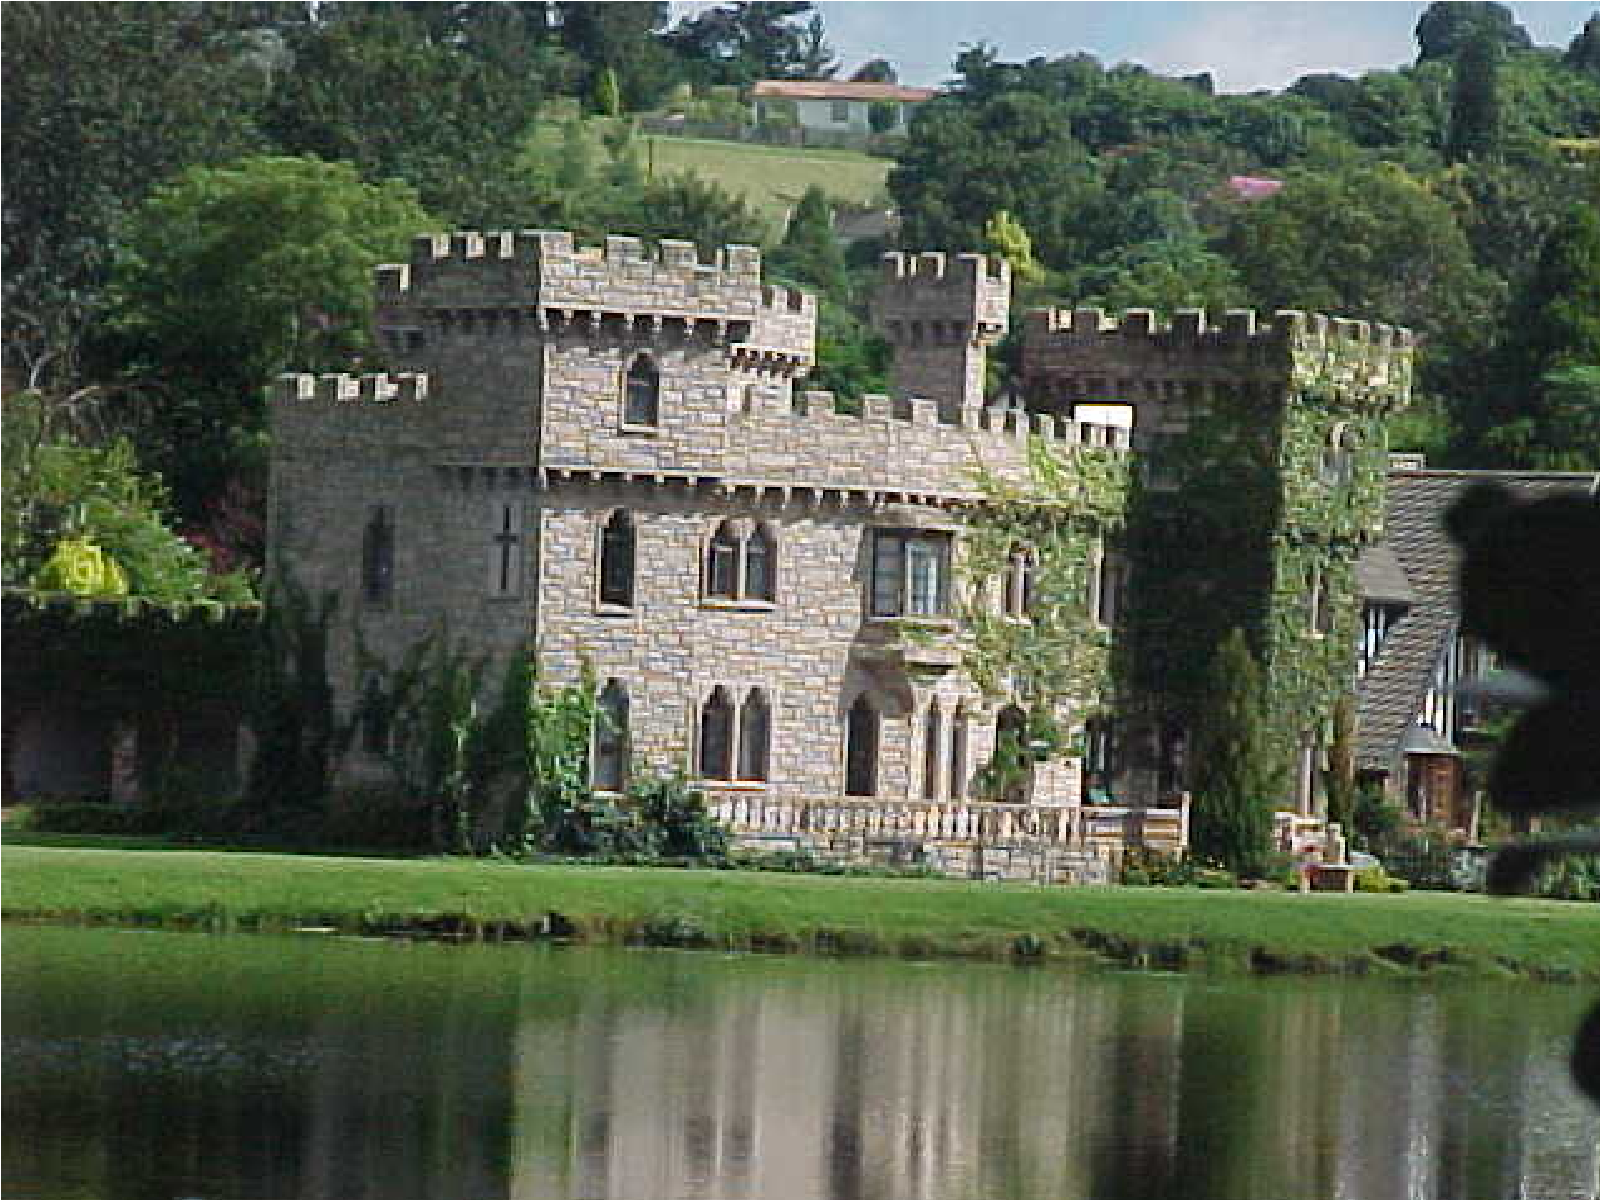 Stratford castle, South Africa